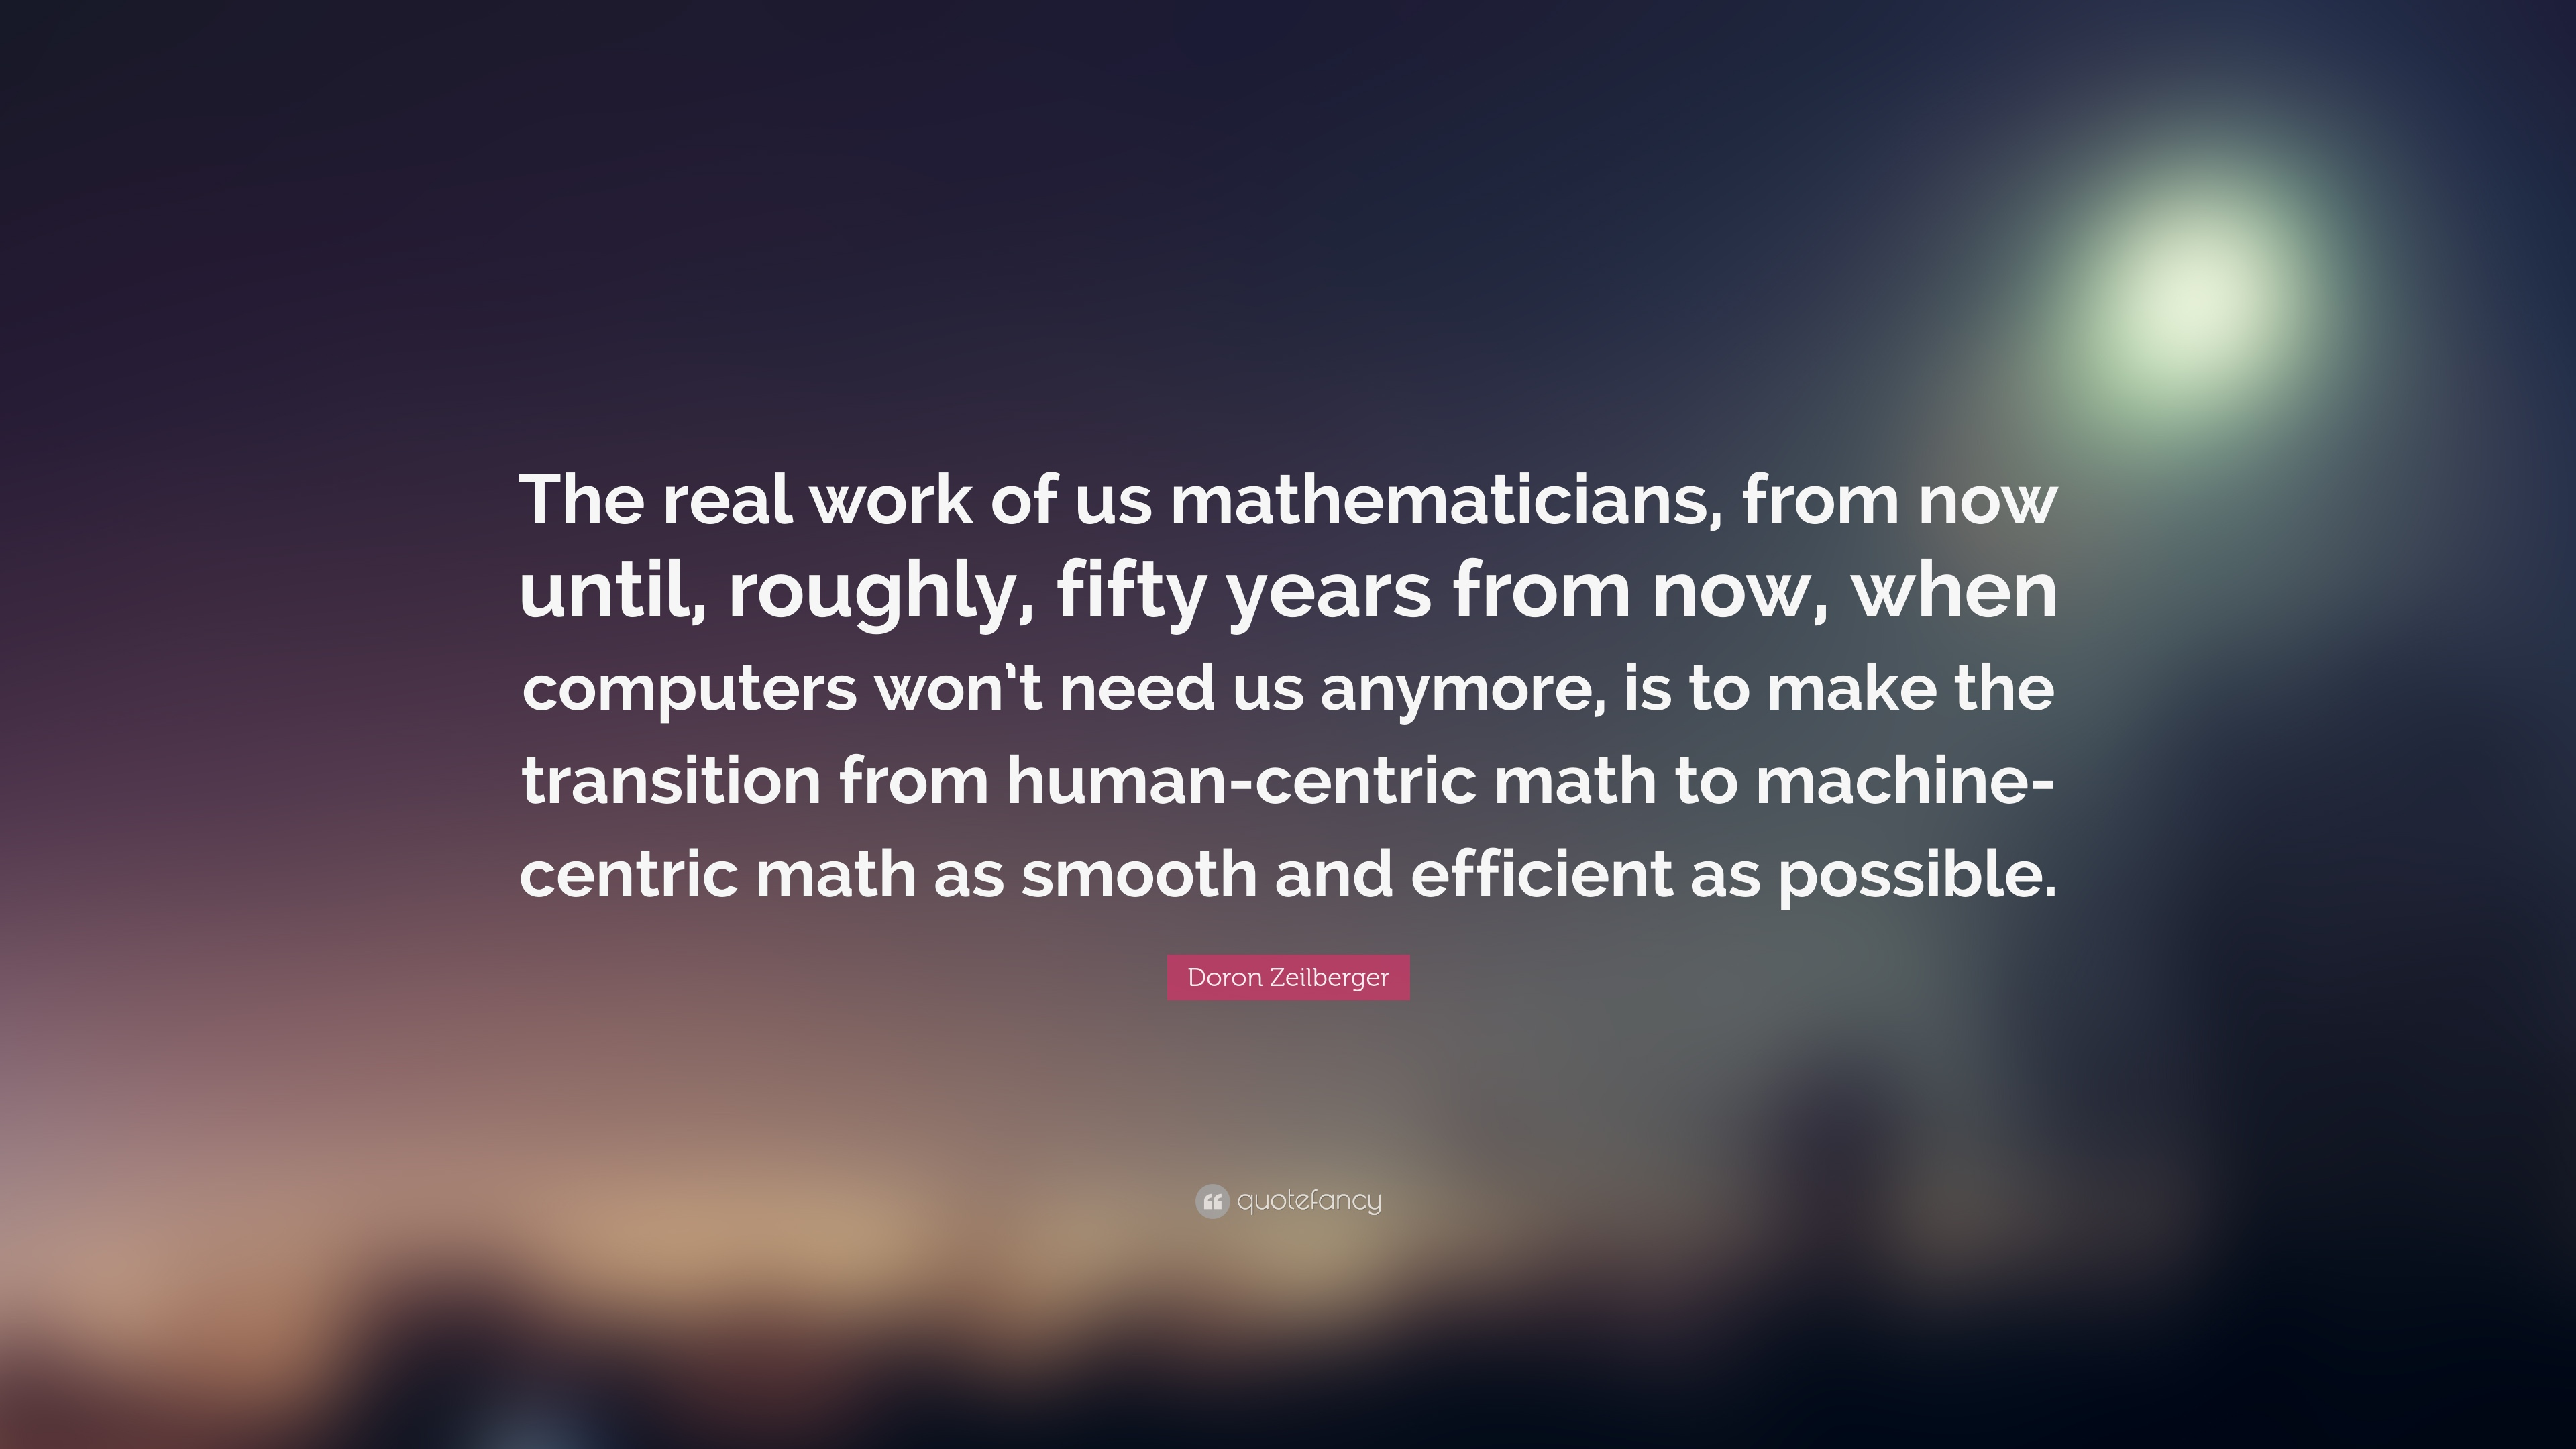 Doron Zeilberger Quote The real work of us mathematicians from